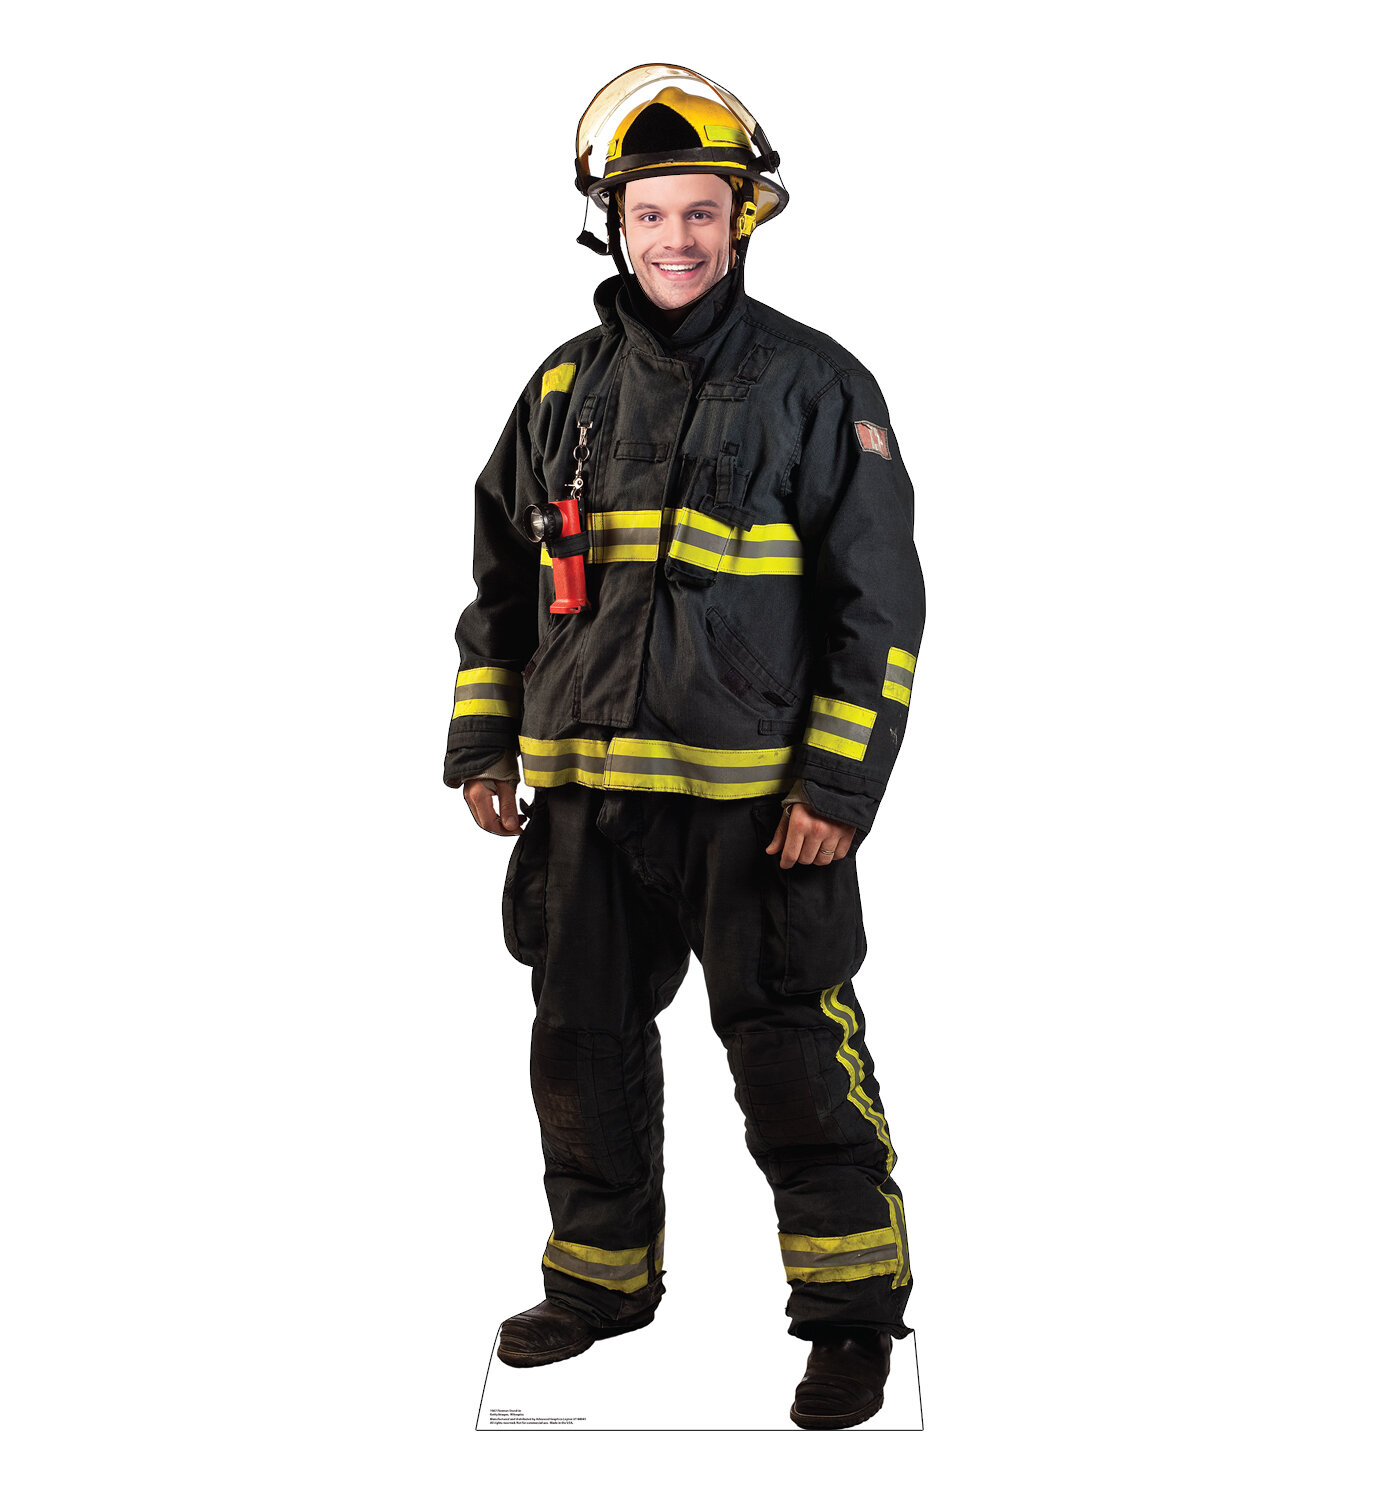 415feb097b86 Advanced Graphics Fireman Life-Size Cardboard Cutout Stand-In